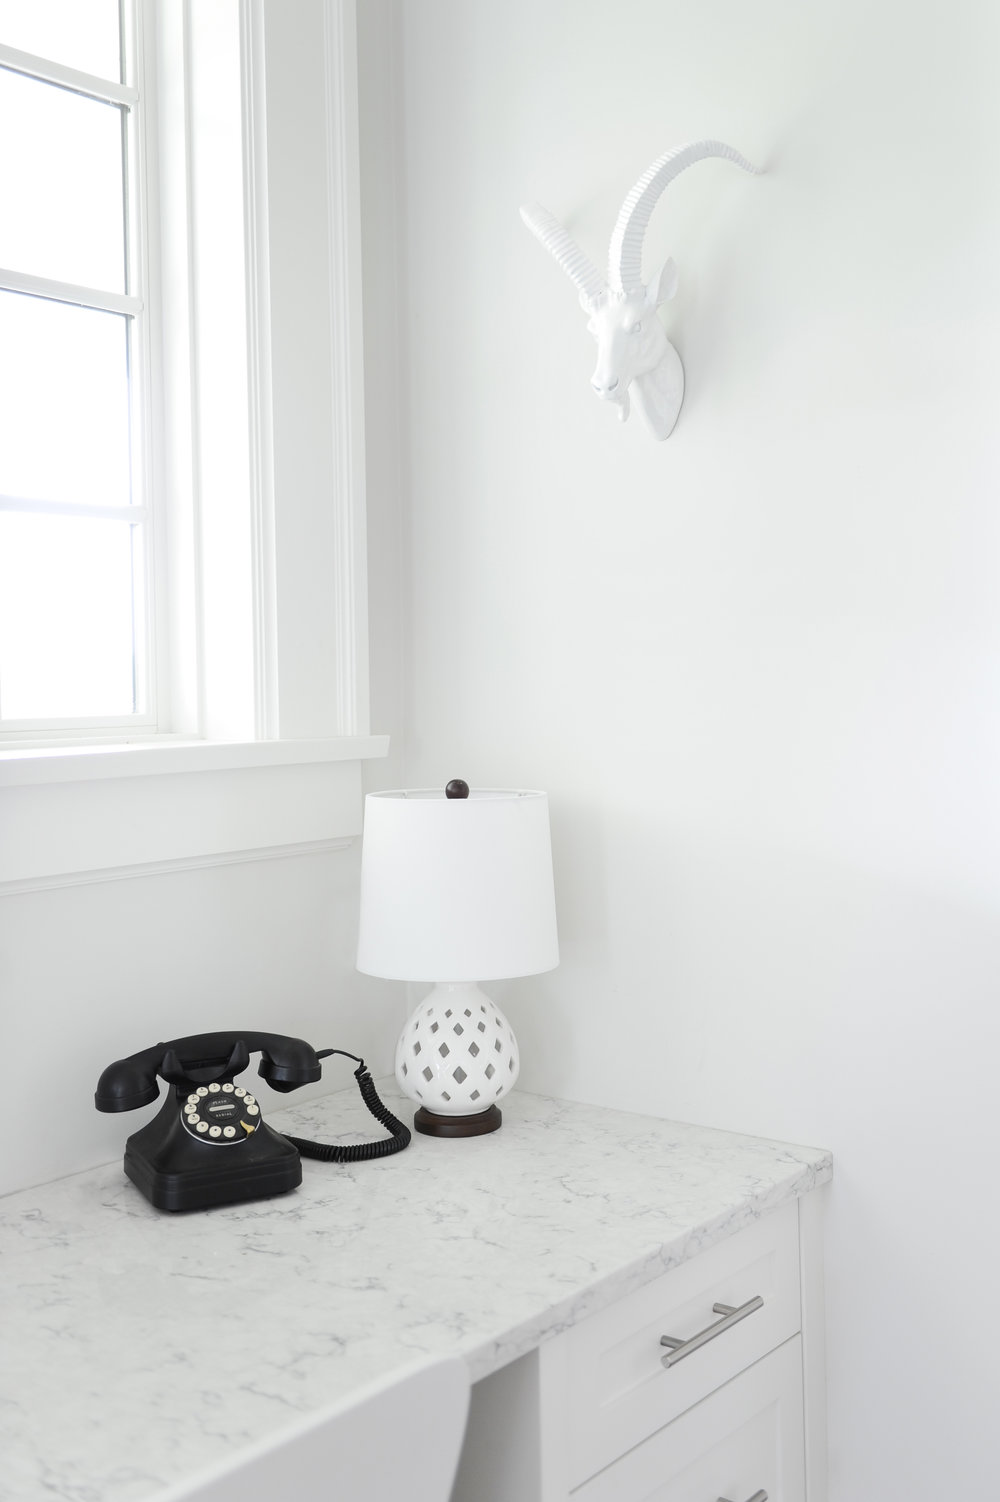 An old-timey phone and a decorative white lamp sit in the corner of a desk. A white ceramic animal head hangs on the wall above it.